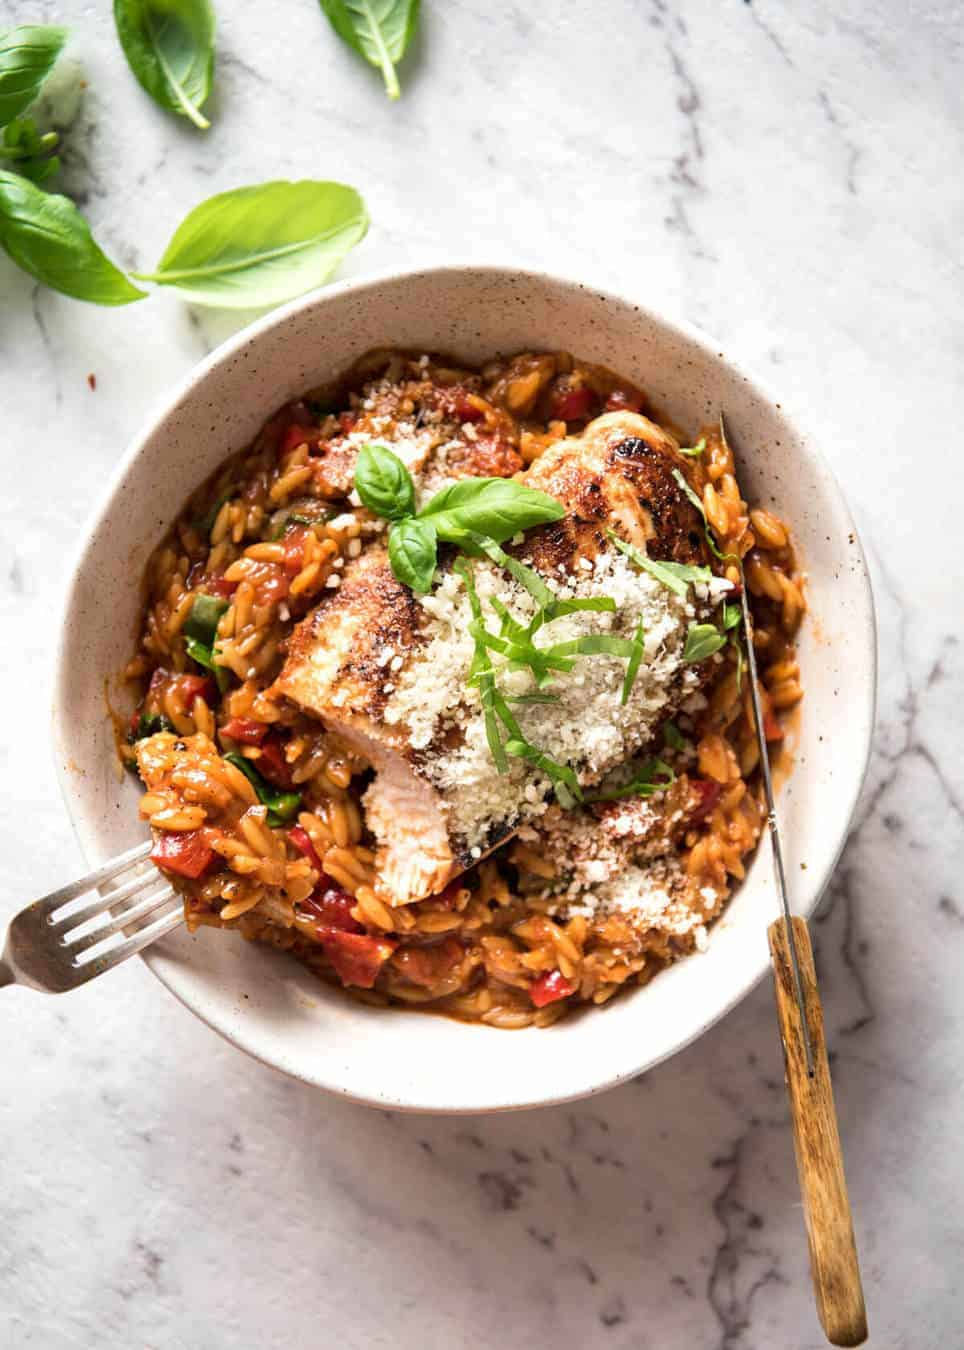 One pot italian chicken orzo risoni pasta recipetin eats risoni pasta recipe with chicken italian chicken with a tomato basil risoni pasta recipe forumfinder Image collections